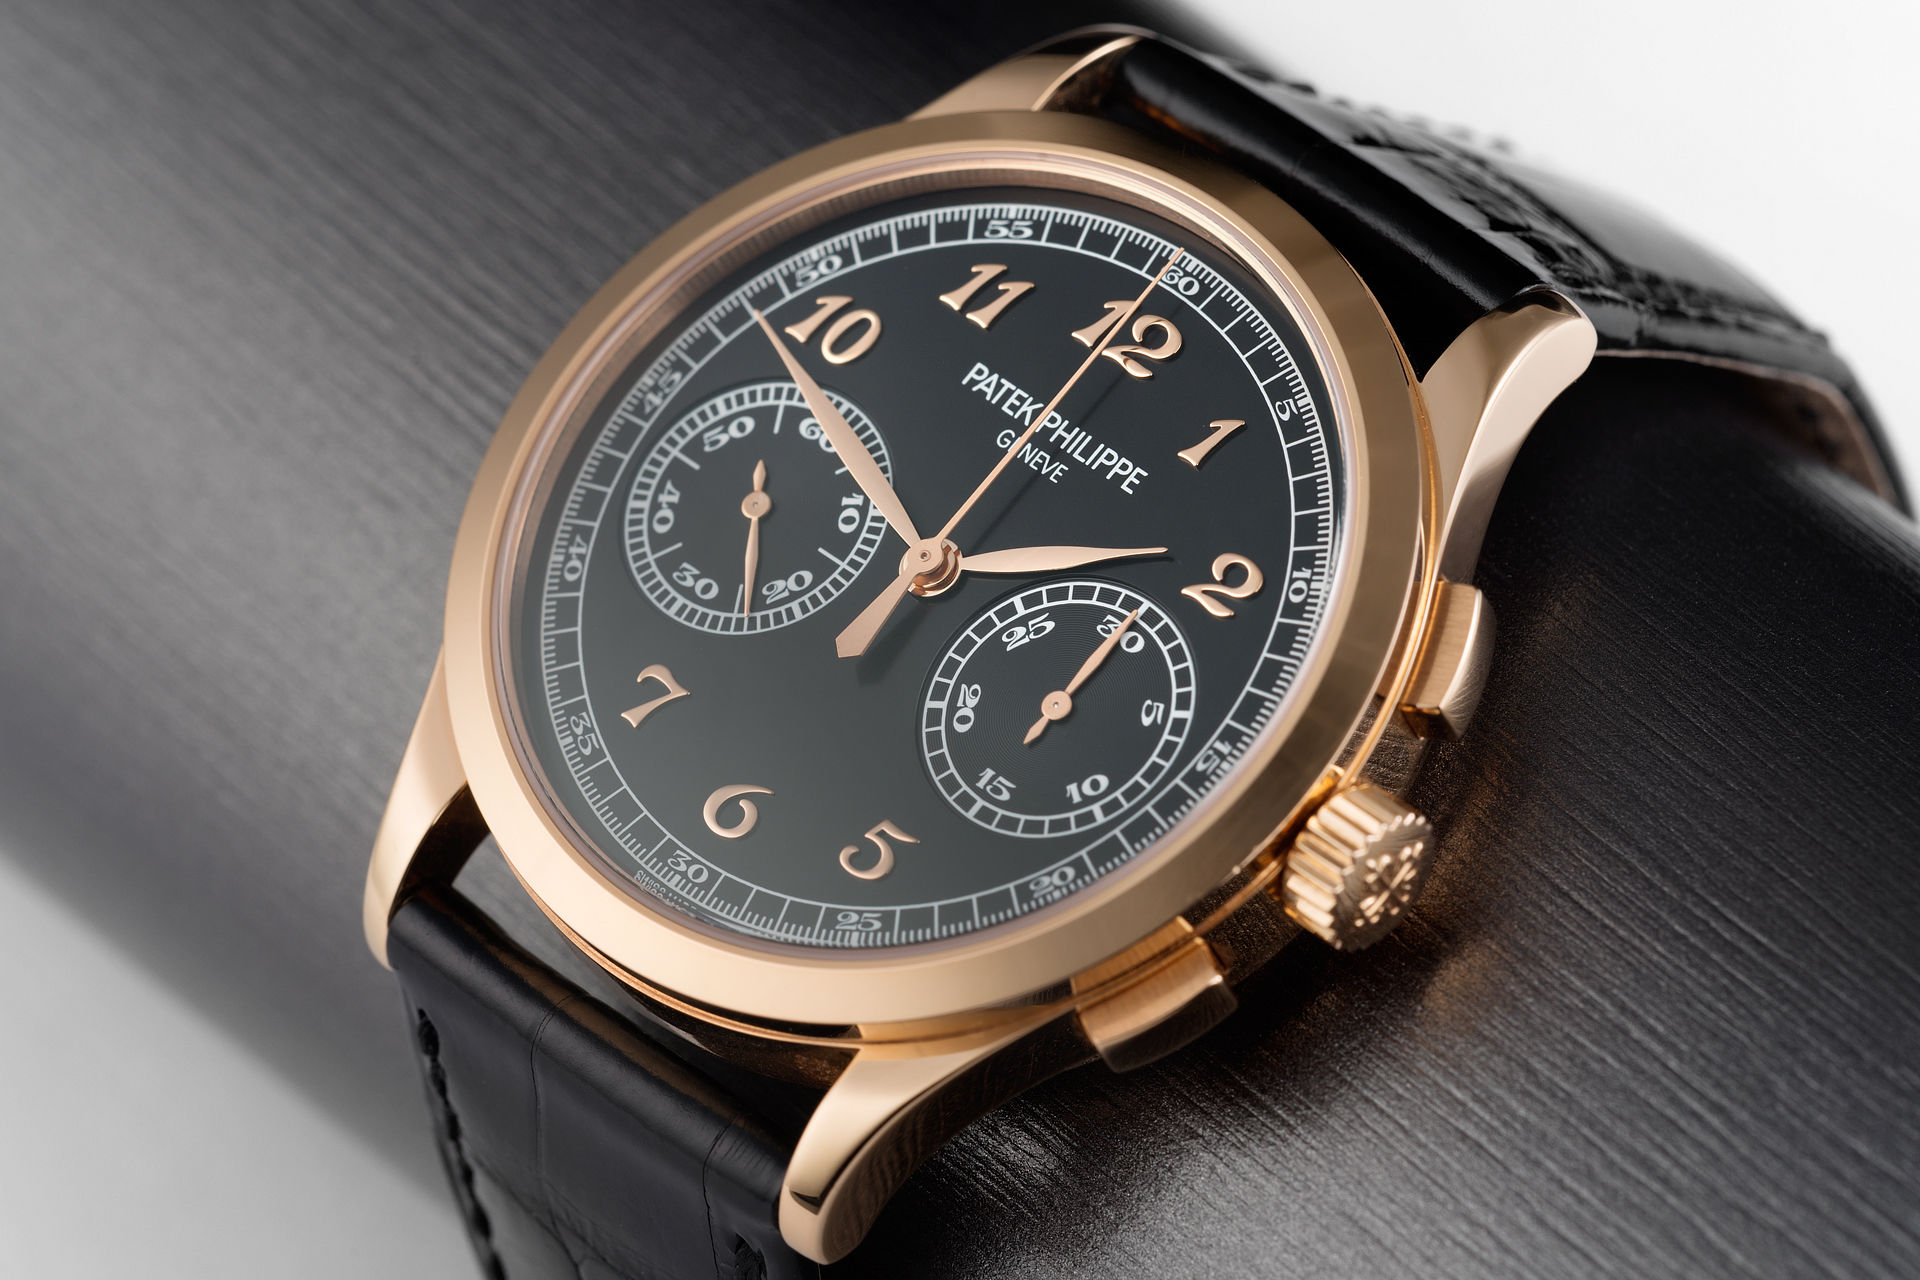 ref 5170R-010 | 18ct Rose Gold 'Full Set' | Patek Philippe Chronograph